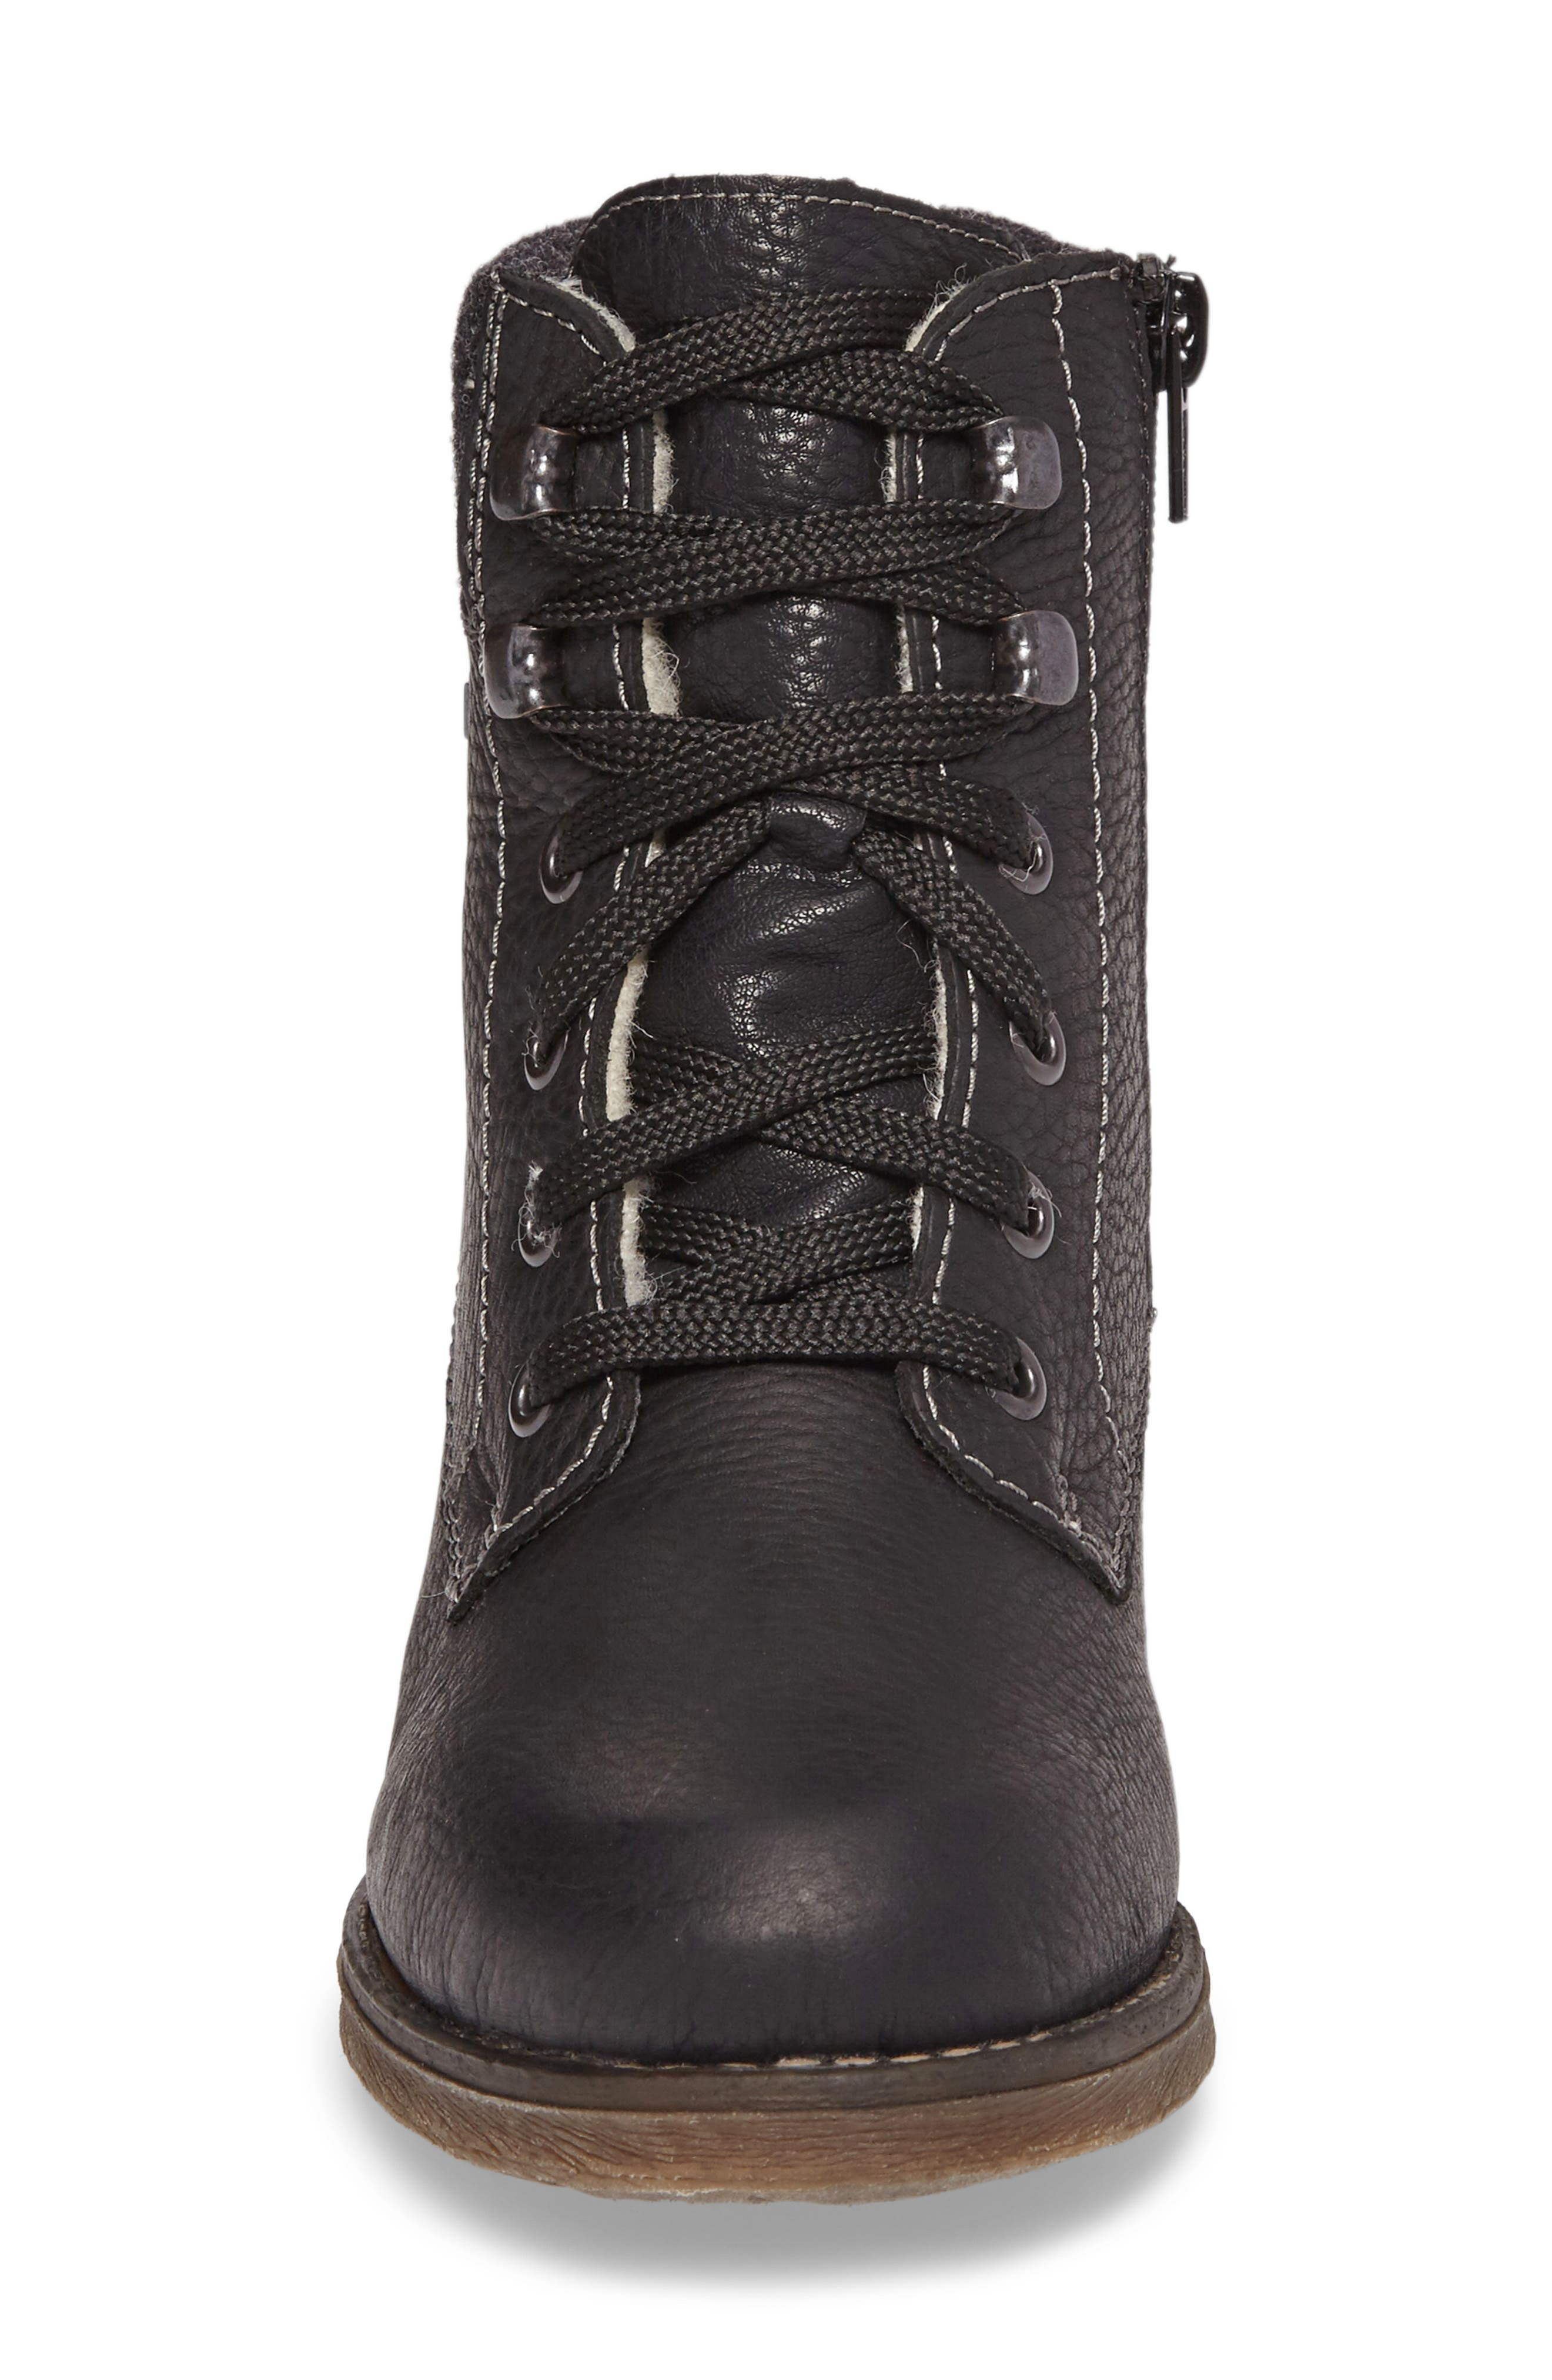 Fee 02 Lace-Up Boot,                             Alternate thumbnail 4, color,                             SCHWARZ ANTRACHITE LEATHER